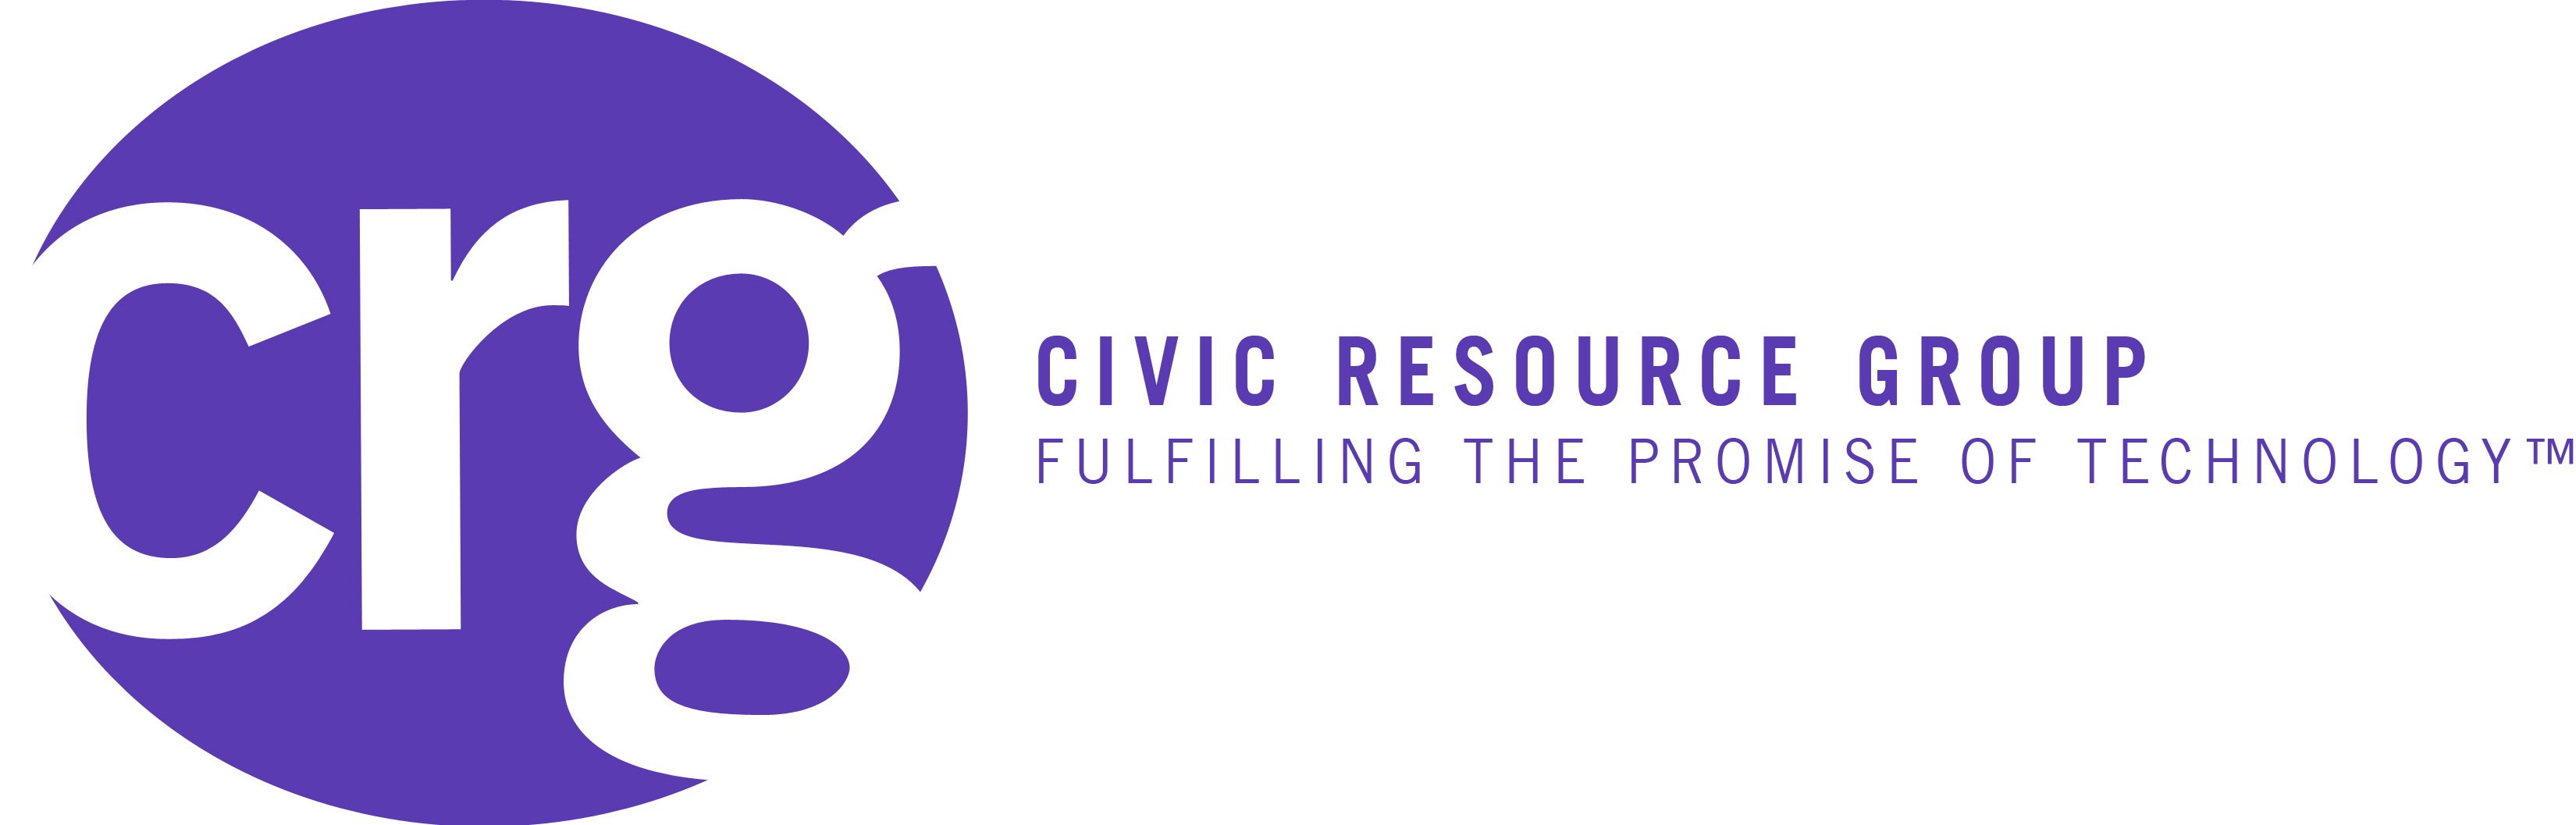 Civic Resources Group logo